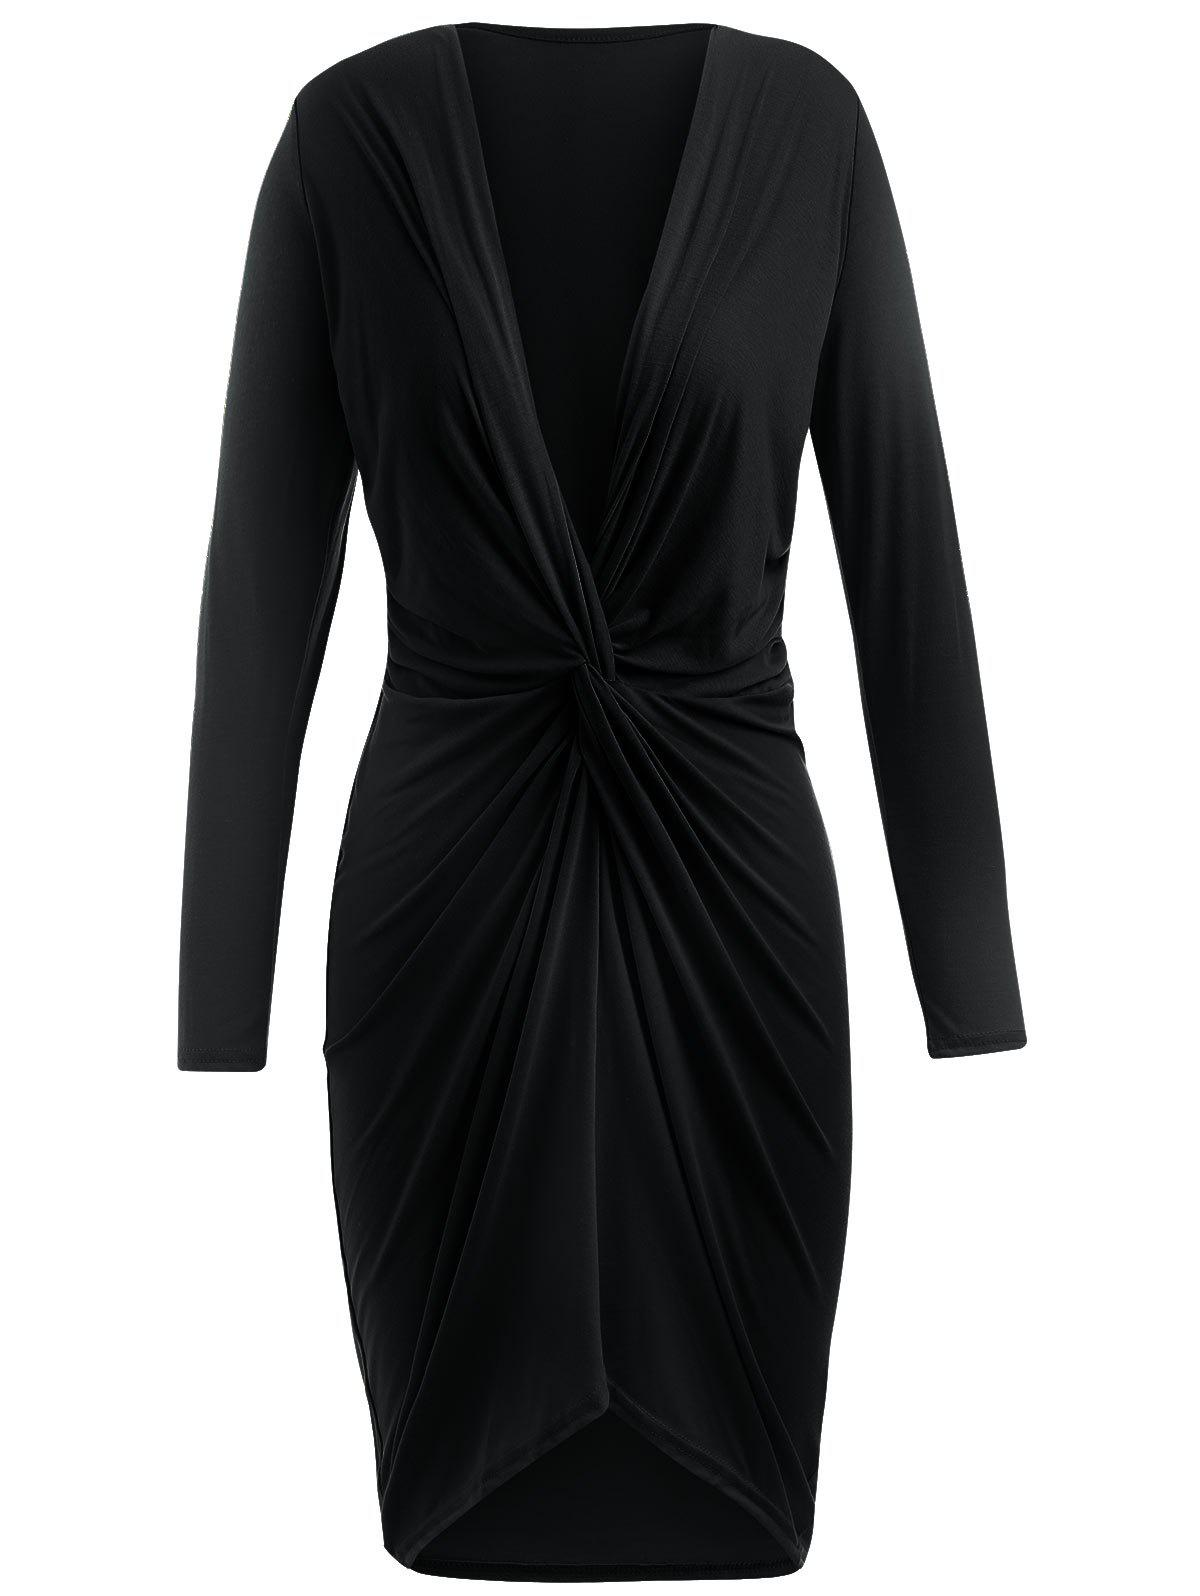 New Knotted Front Full Sleeve Asymmetrical Dress